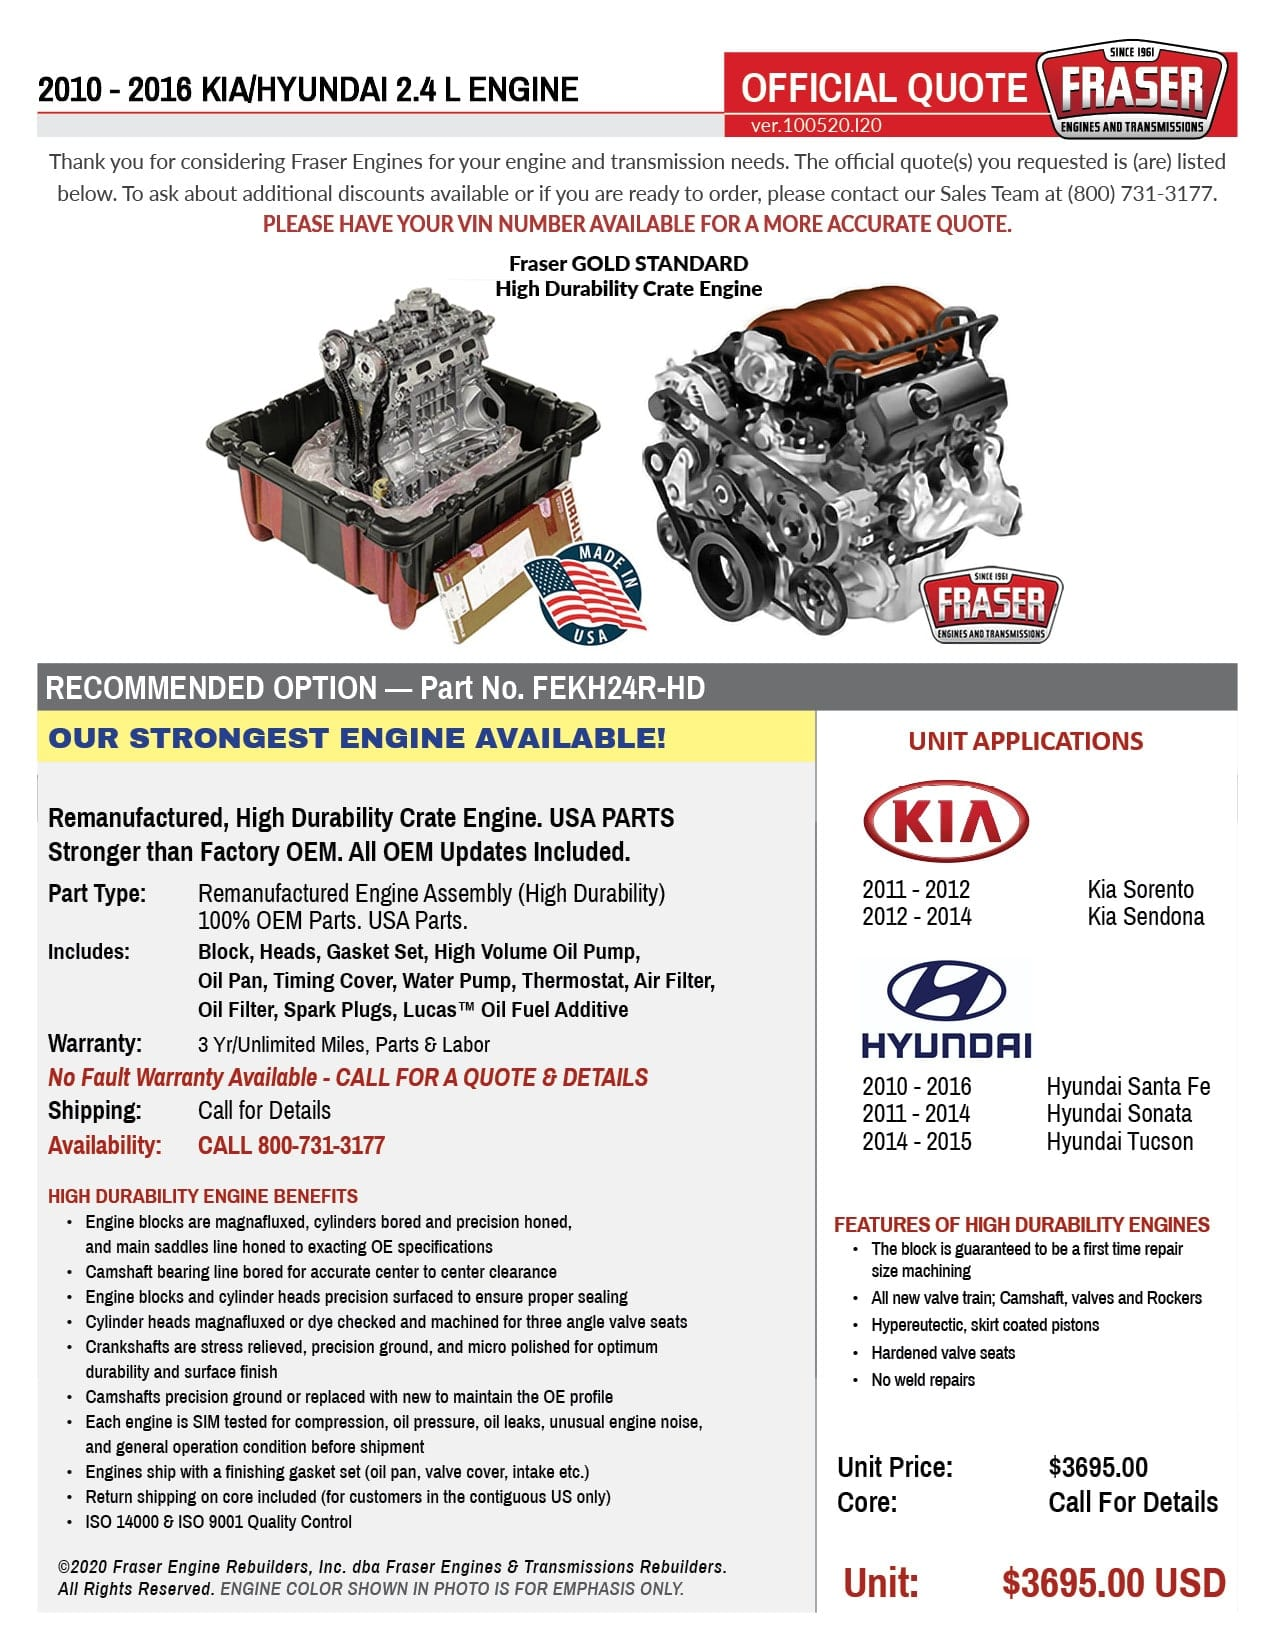 2010 - 2016 Kia/Hyundai 2.4 Liter Engines